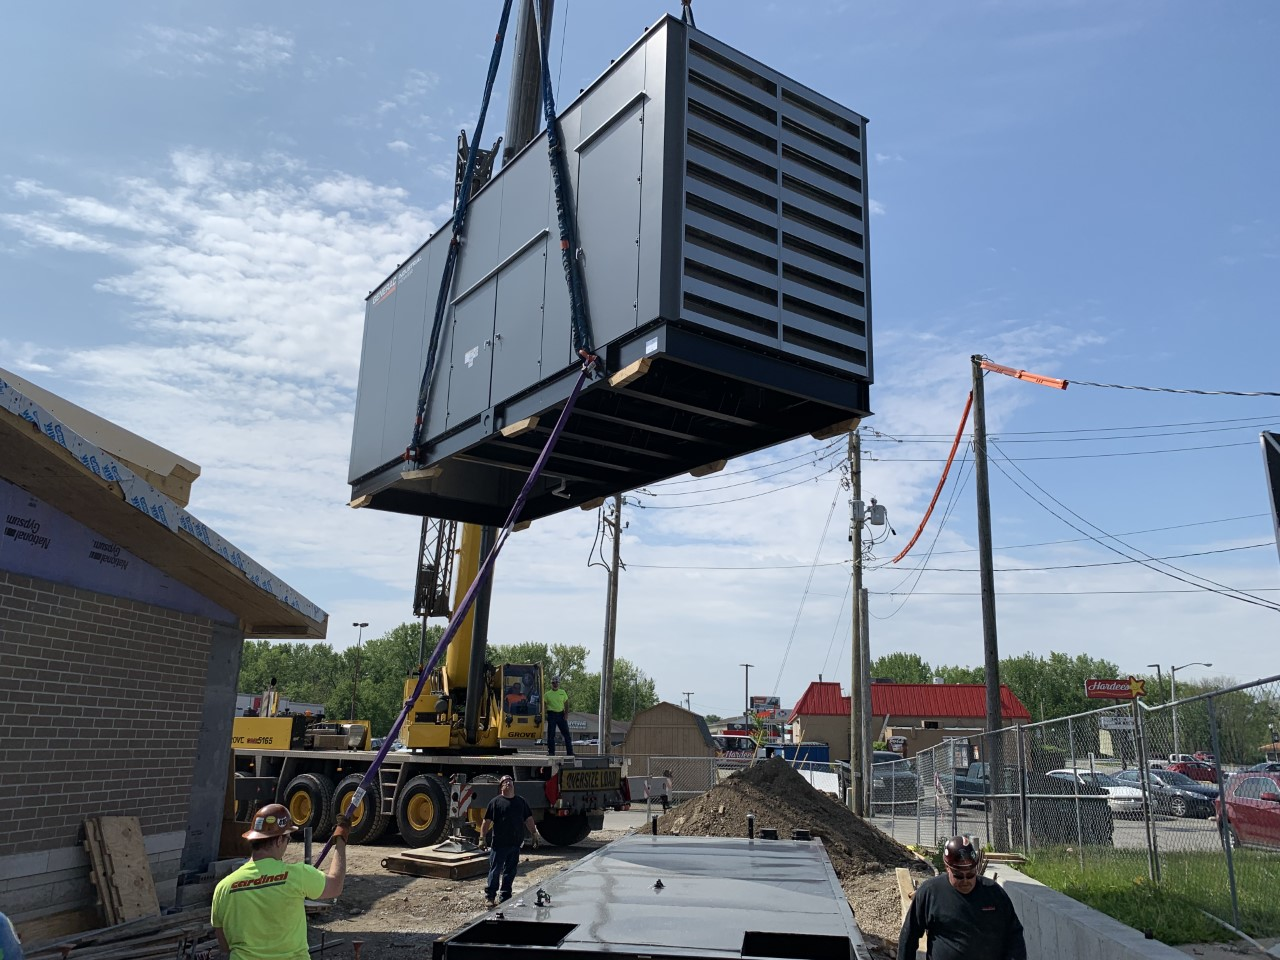 Banta Electric, 5/15/19 - Cardinal Contracting set a new Trane chiller and 40,000# Generac in Rushville, IN, and then got to work setting transfer switches and transformers in very tight spaces.It's tough to beat the efficiency and safety of 65 years in the rigging industry!